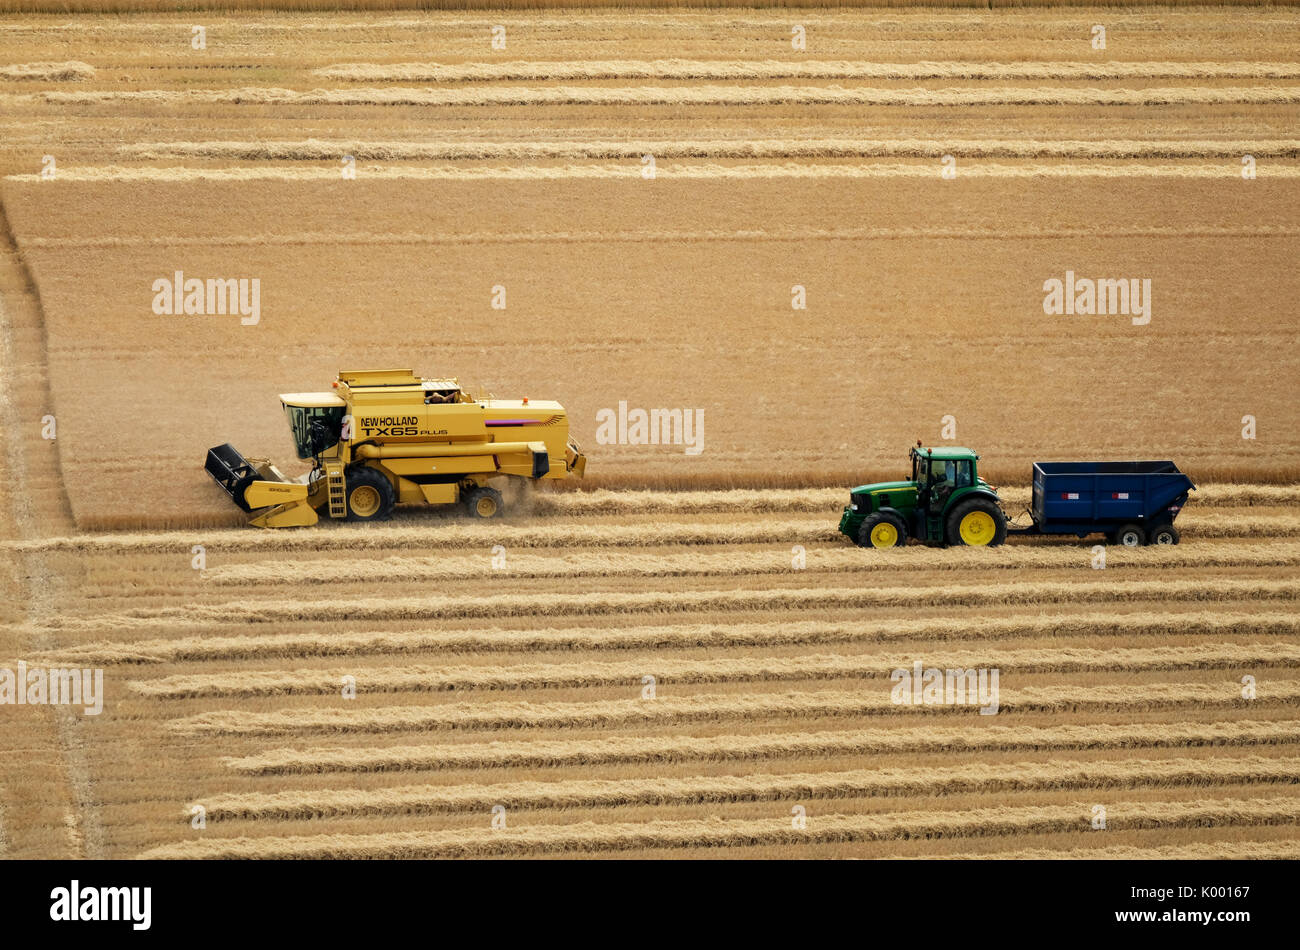 A combine harvester working in a wheat field near North Berwick East Lothian. Stock Photo